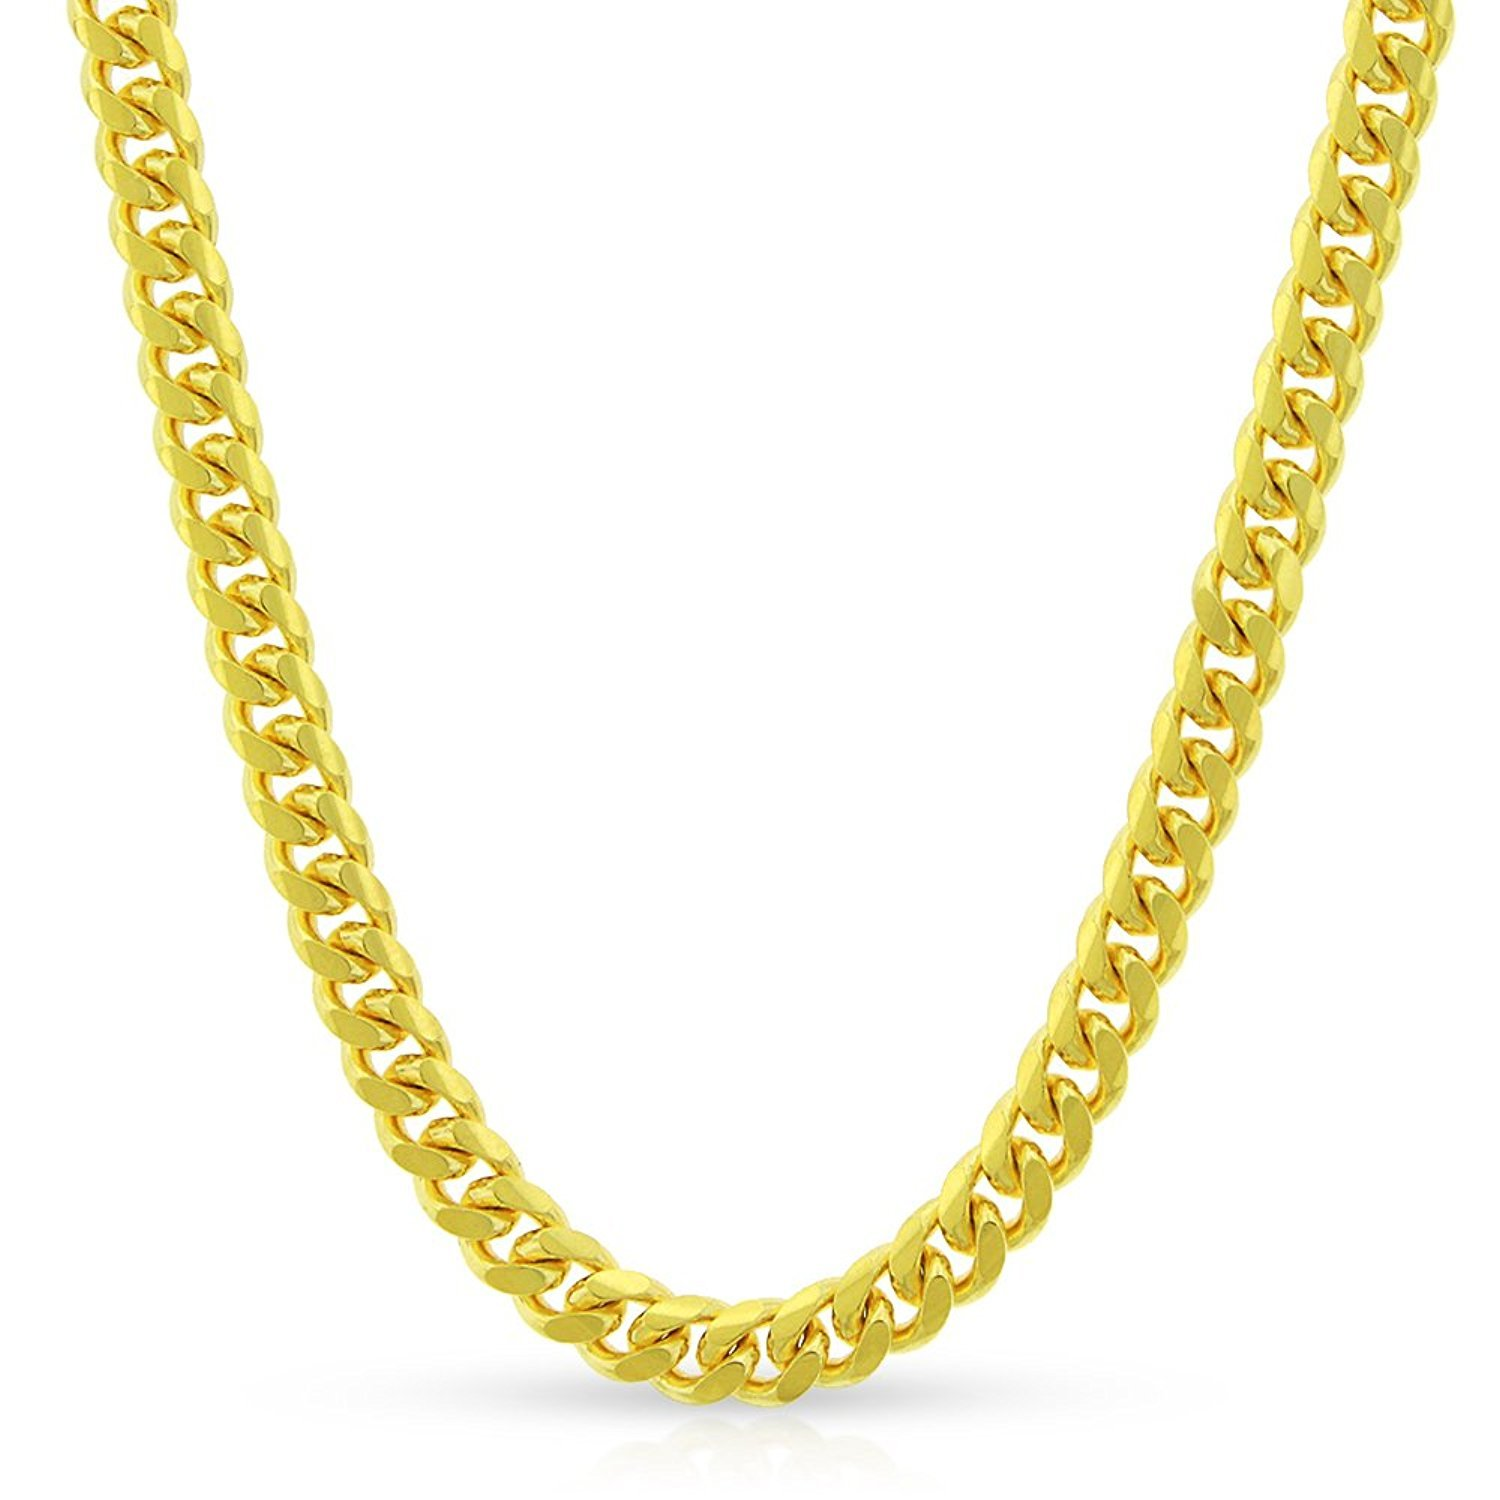 10k Yellow Gold 4mm Solid Miami Cuban Curb Link Necklace Chain 20'' - 30'' (24)